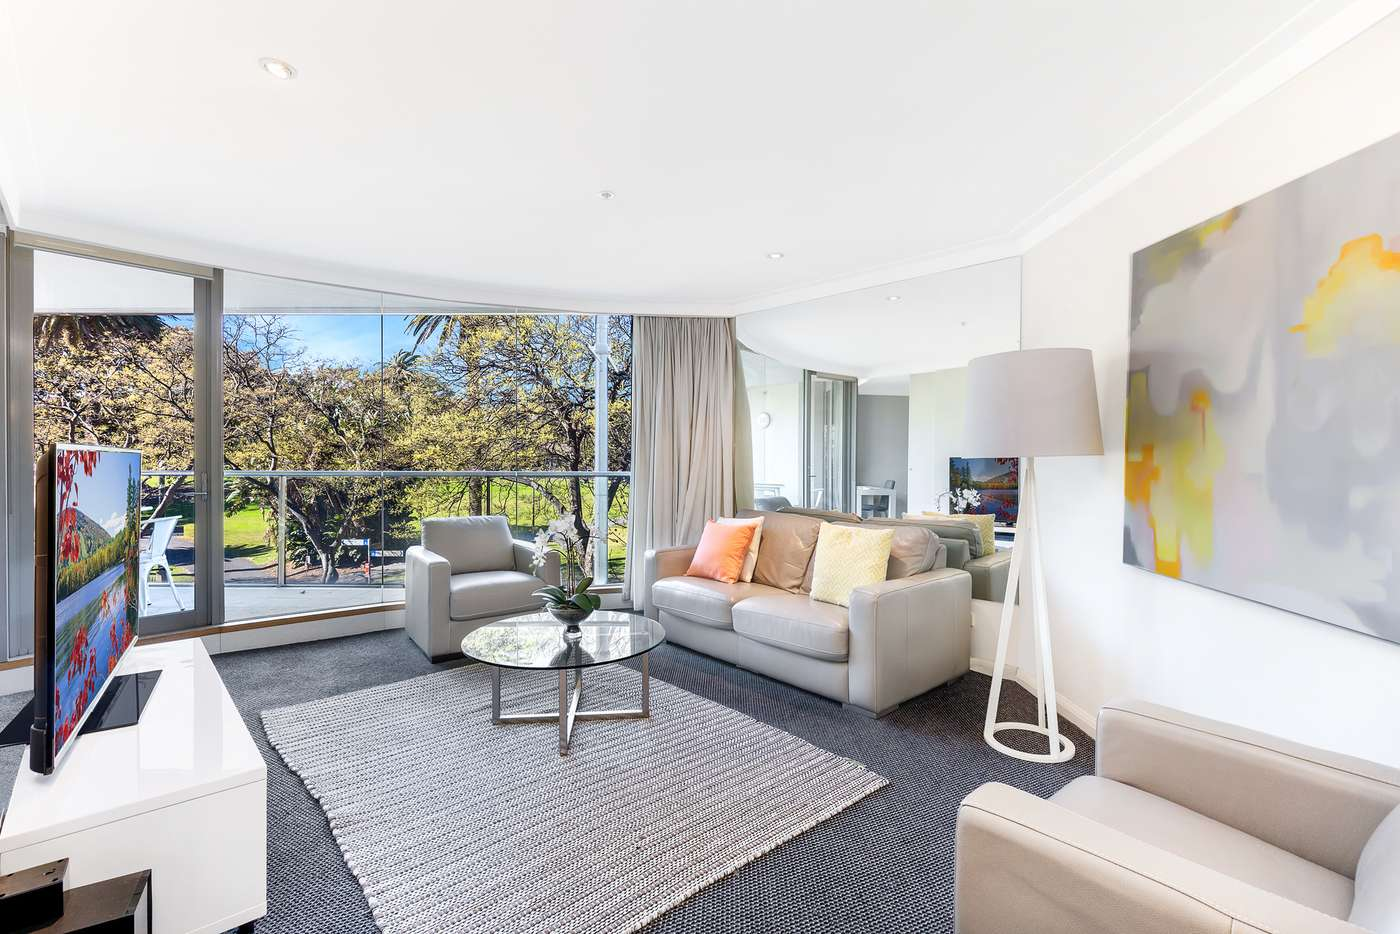 Main view of Homely apartment listing, 512/61 Macquarie Street, Sydney NSW 2000